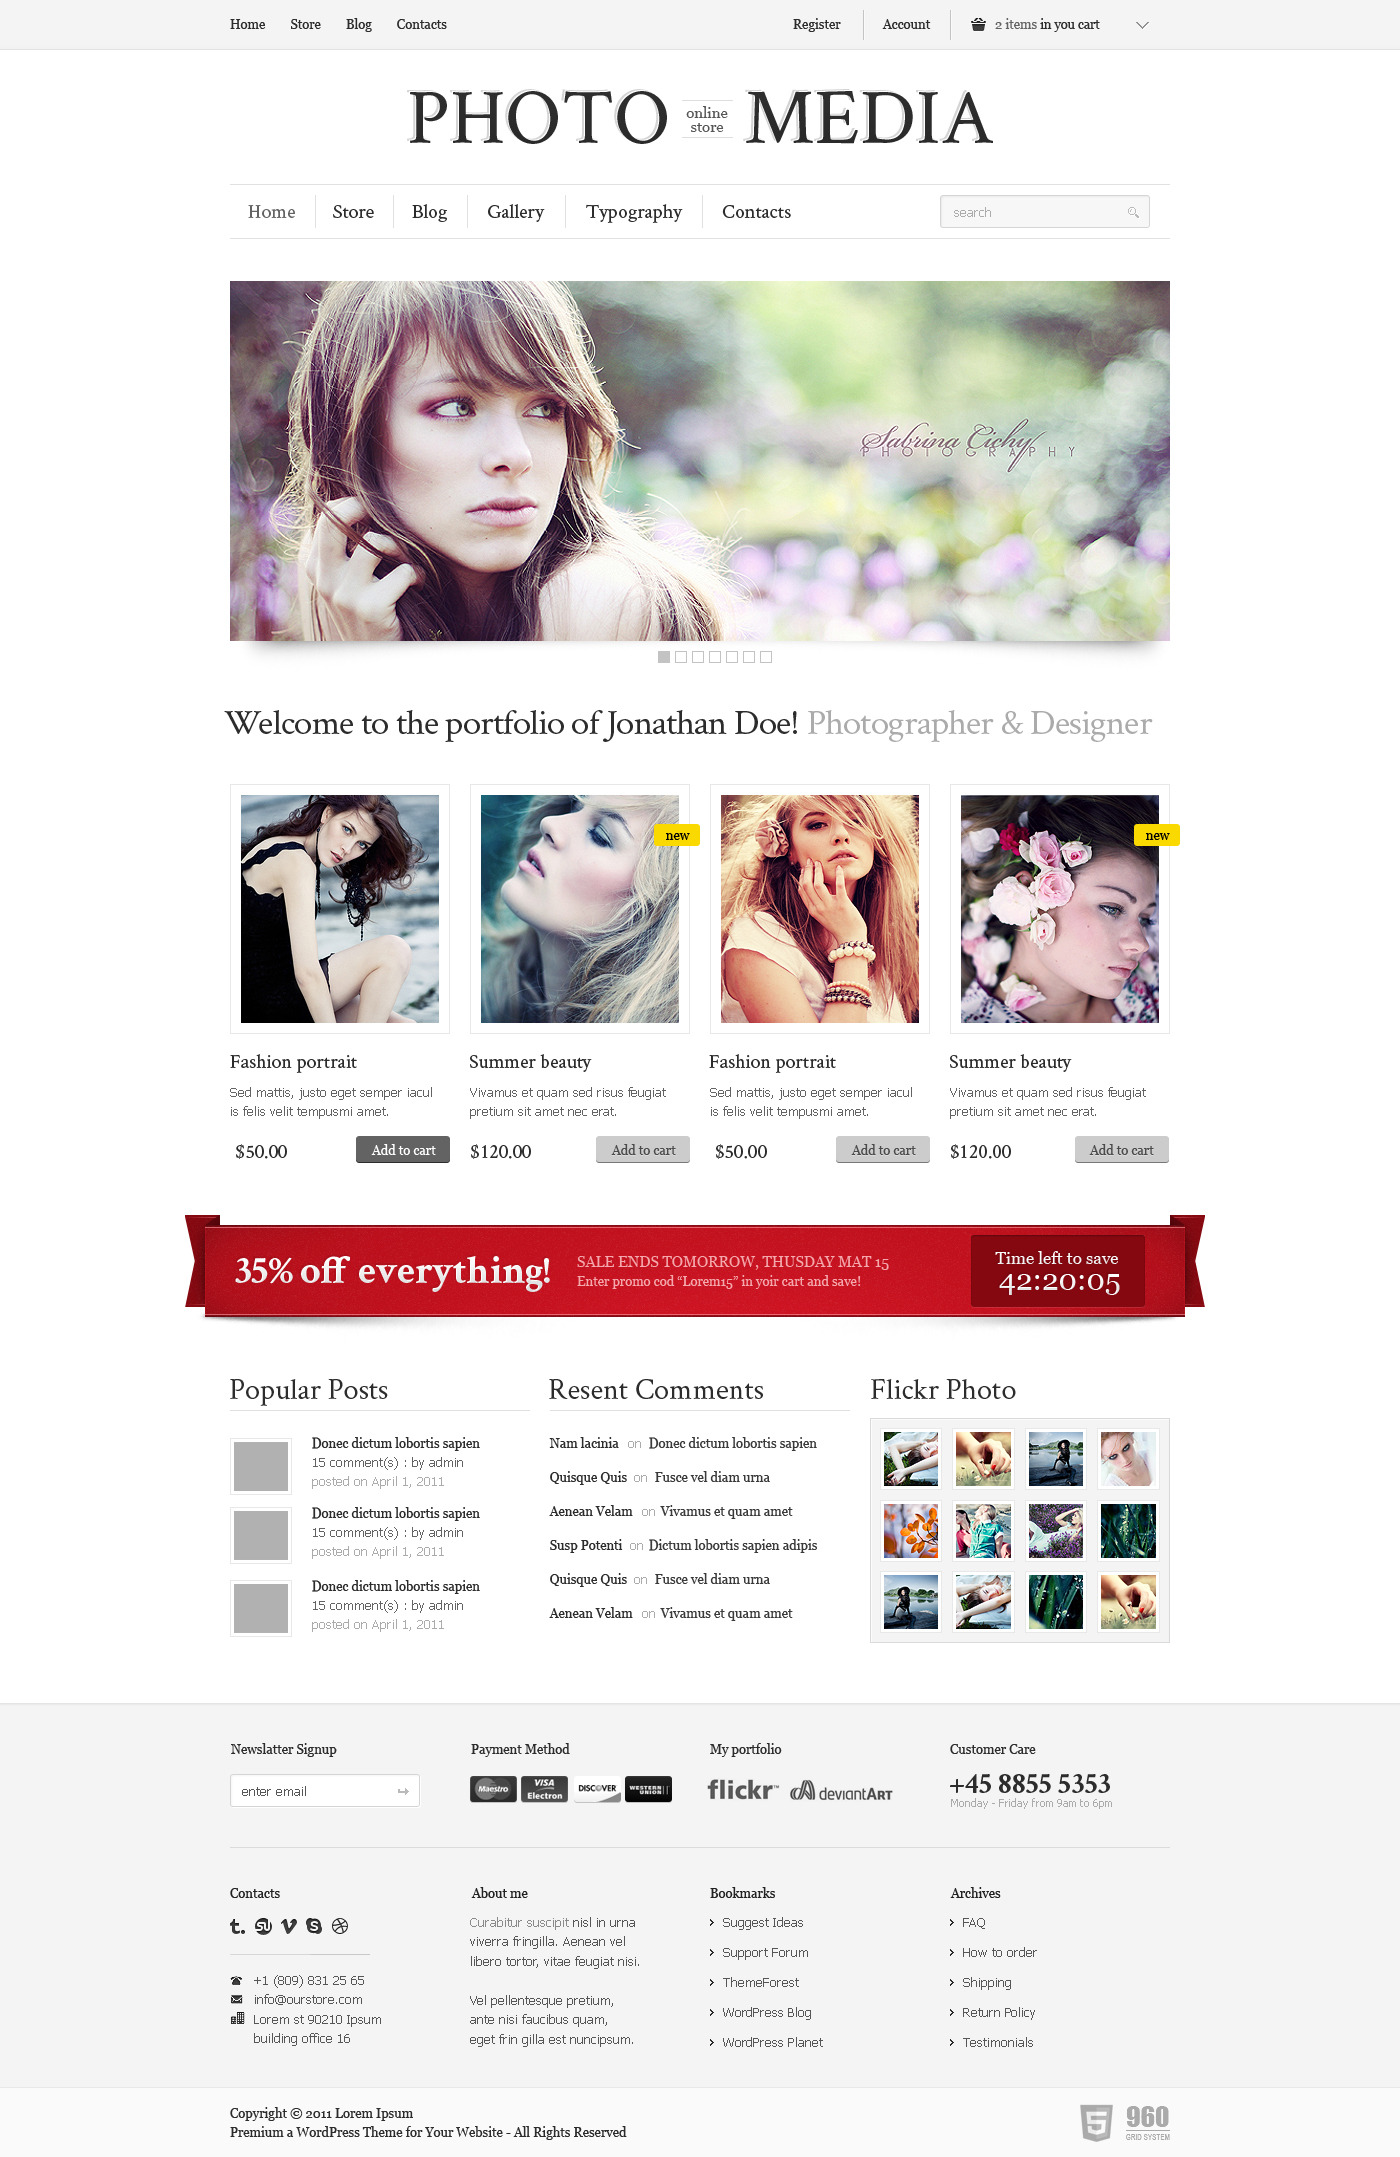 Phomedia Wordpress Theme - A WP E-Commerce theme - Home page overview